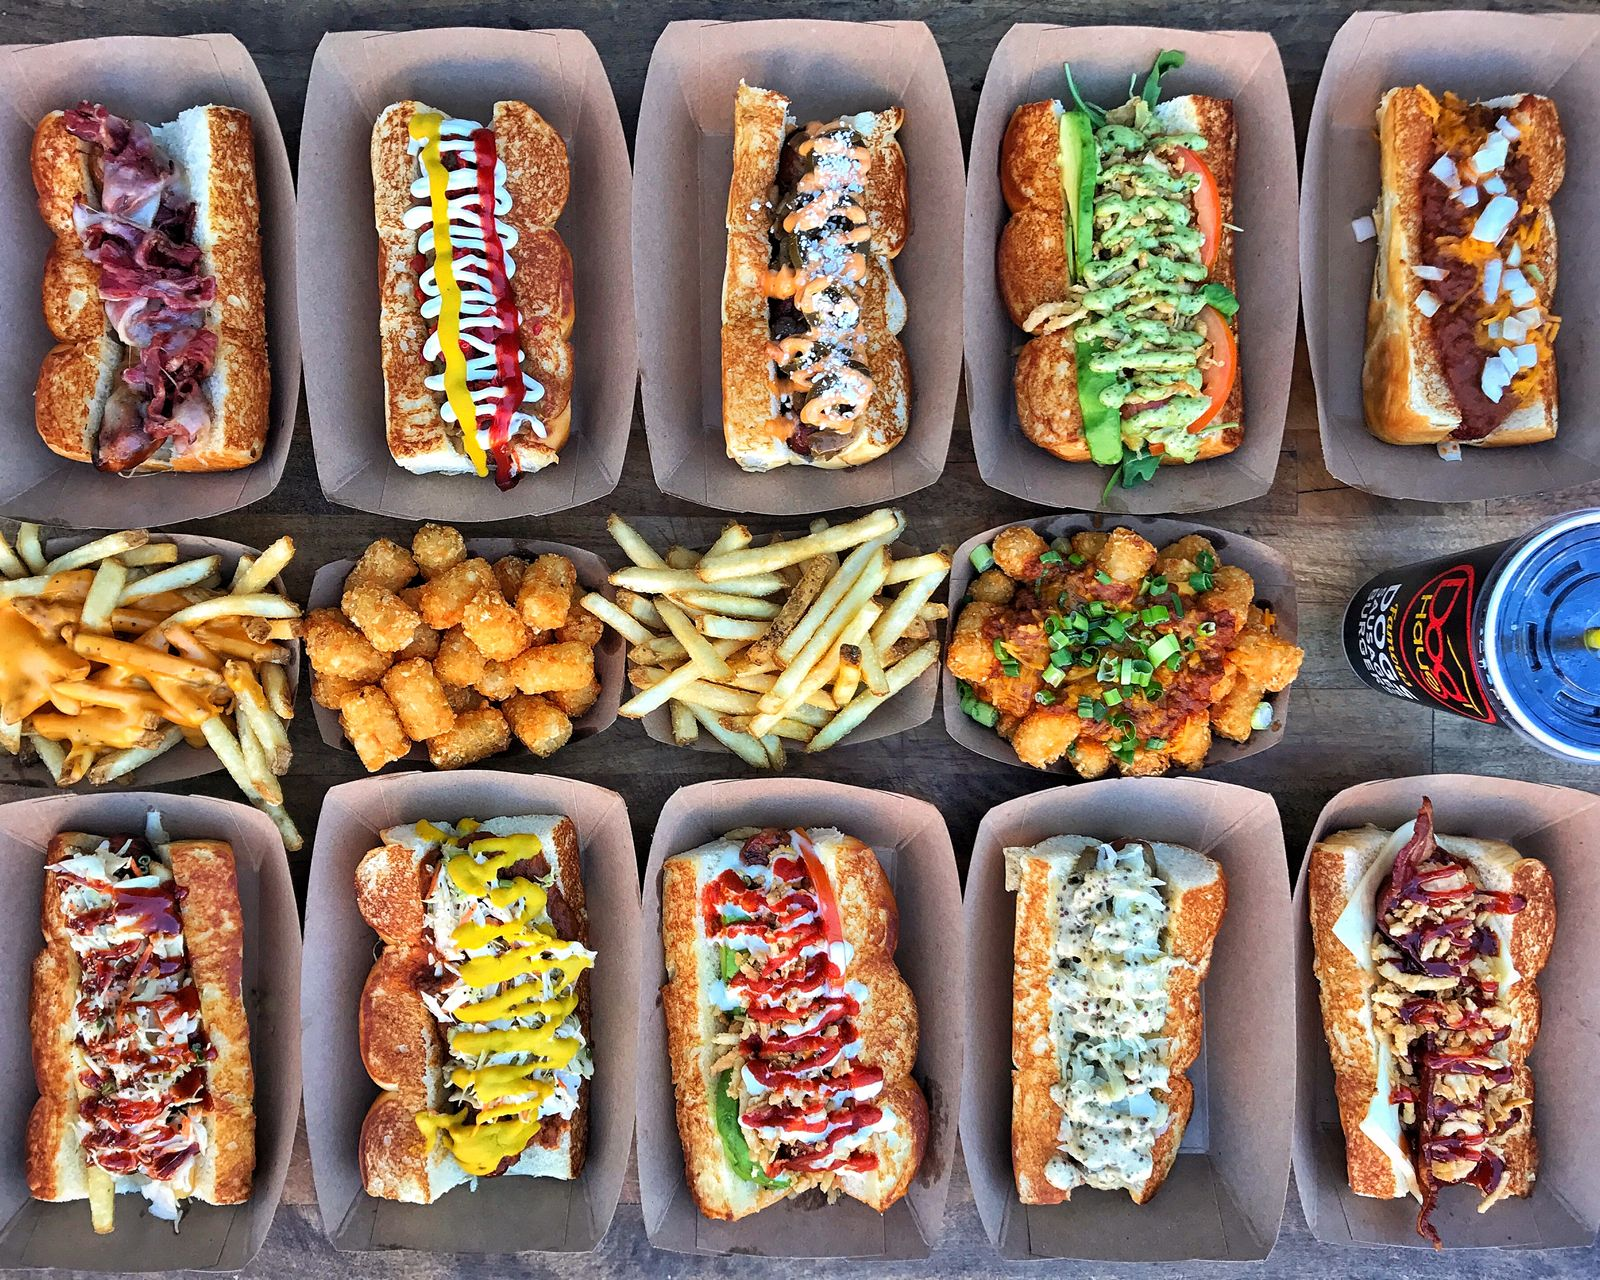 Dog Haus To Bring The Absolute Würst To Belmont